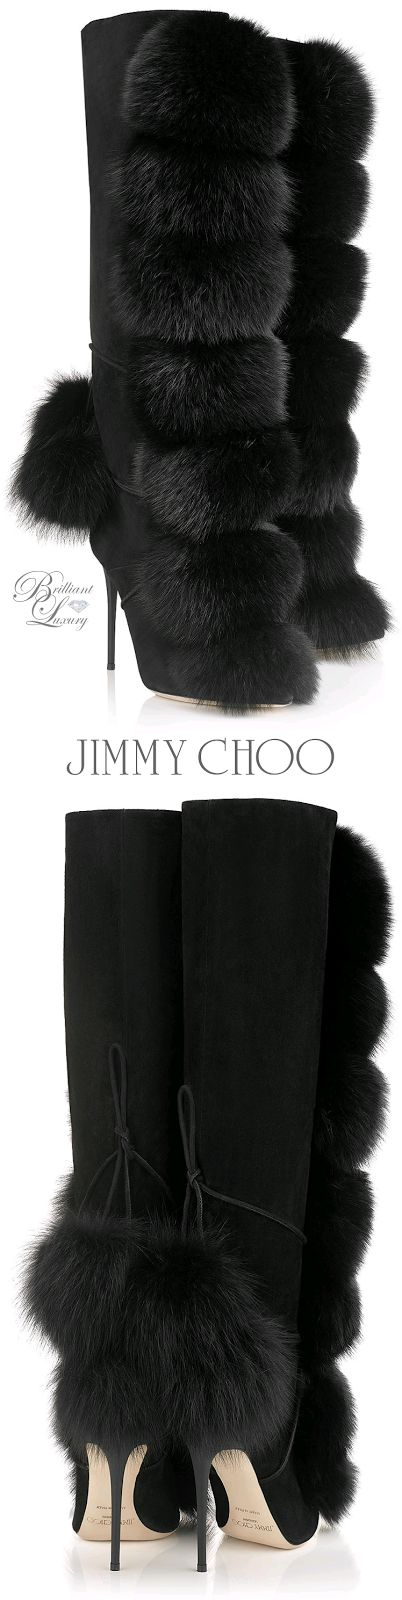 Brilliant Luxury * Jimmy Choo 'Deeta' Inna Erten                                                                                                                                                                                 More